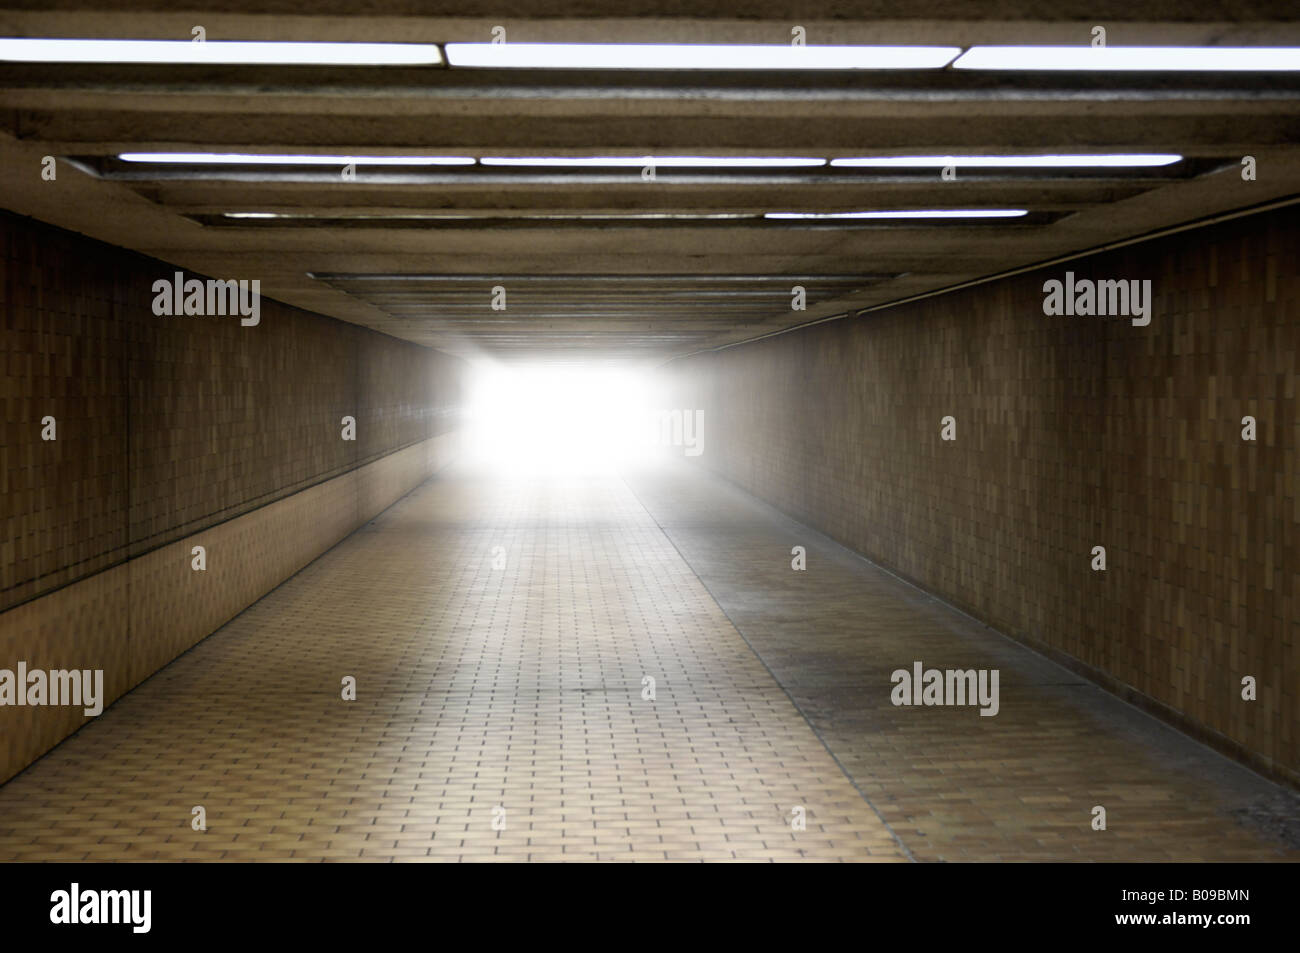 Light at the end of a tunnel - Stock Image